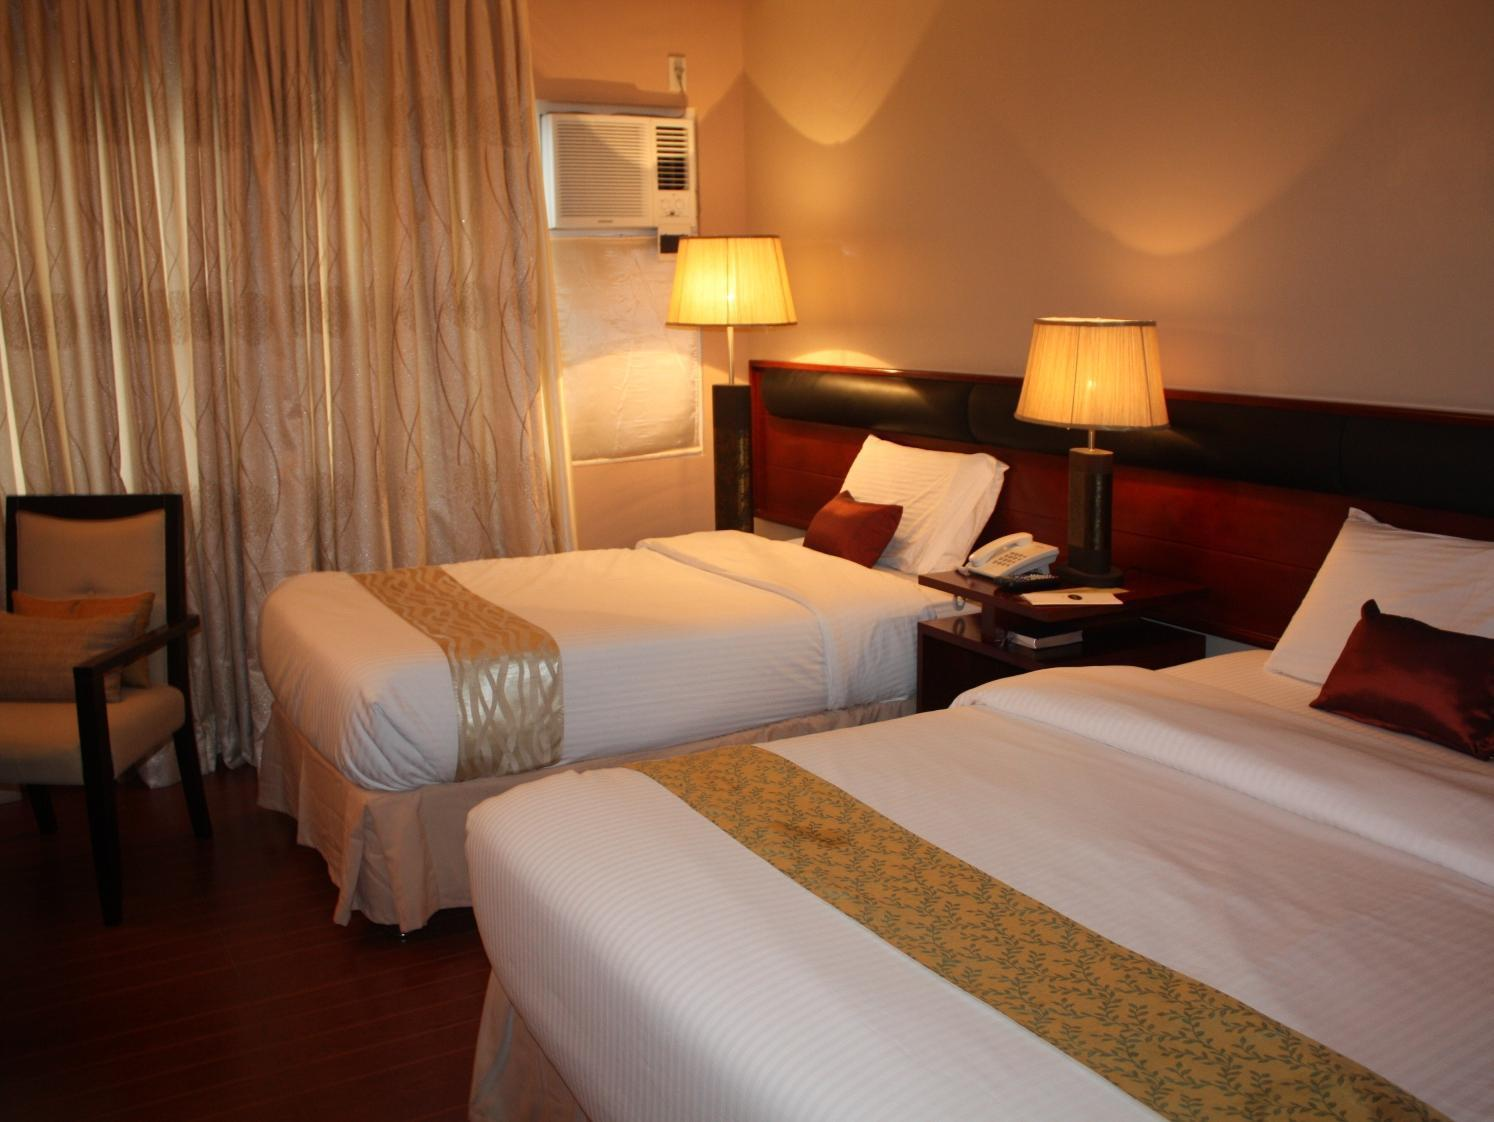 Allure Hotel & Suites Cebu